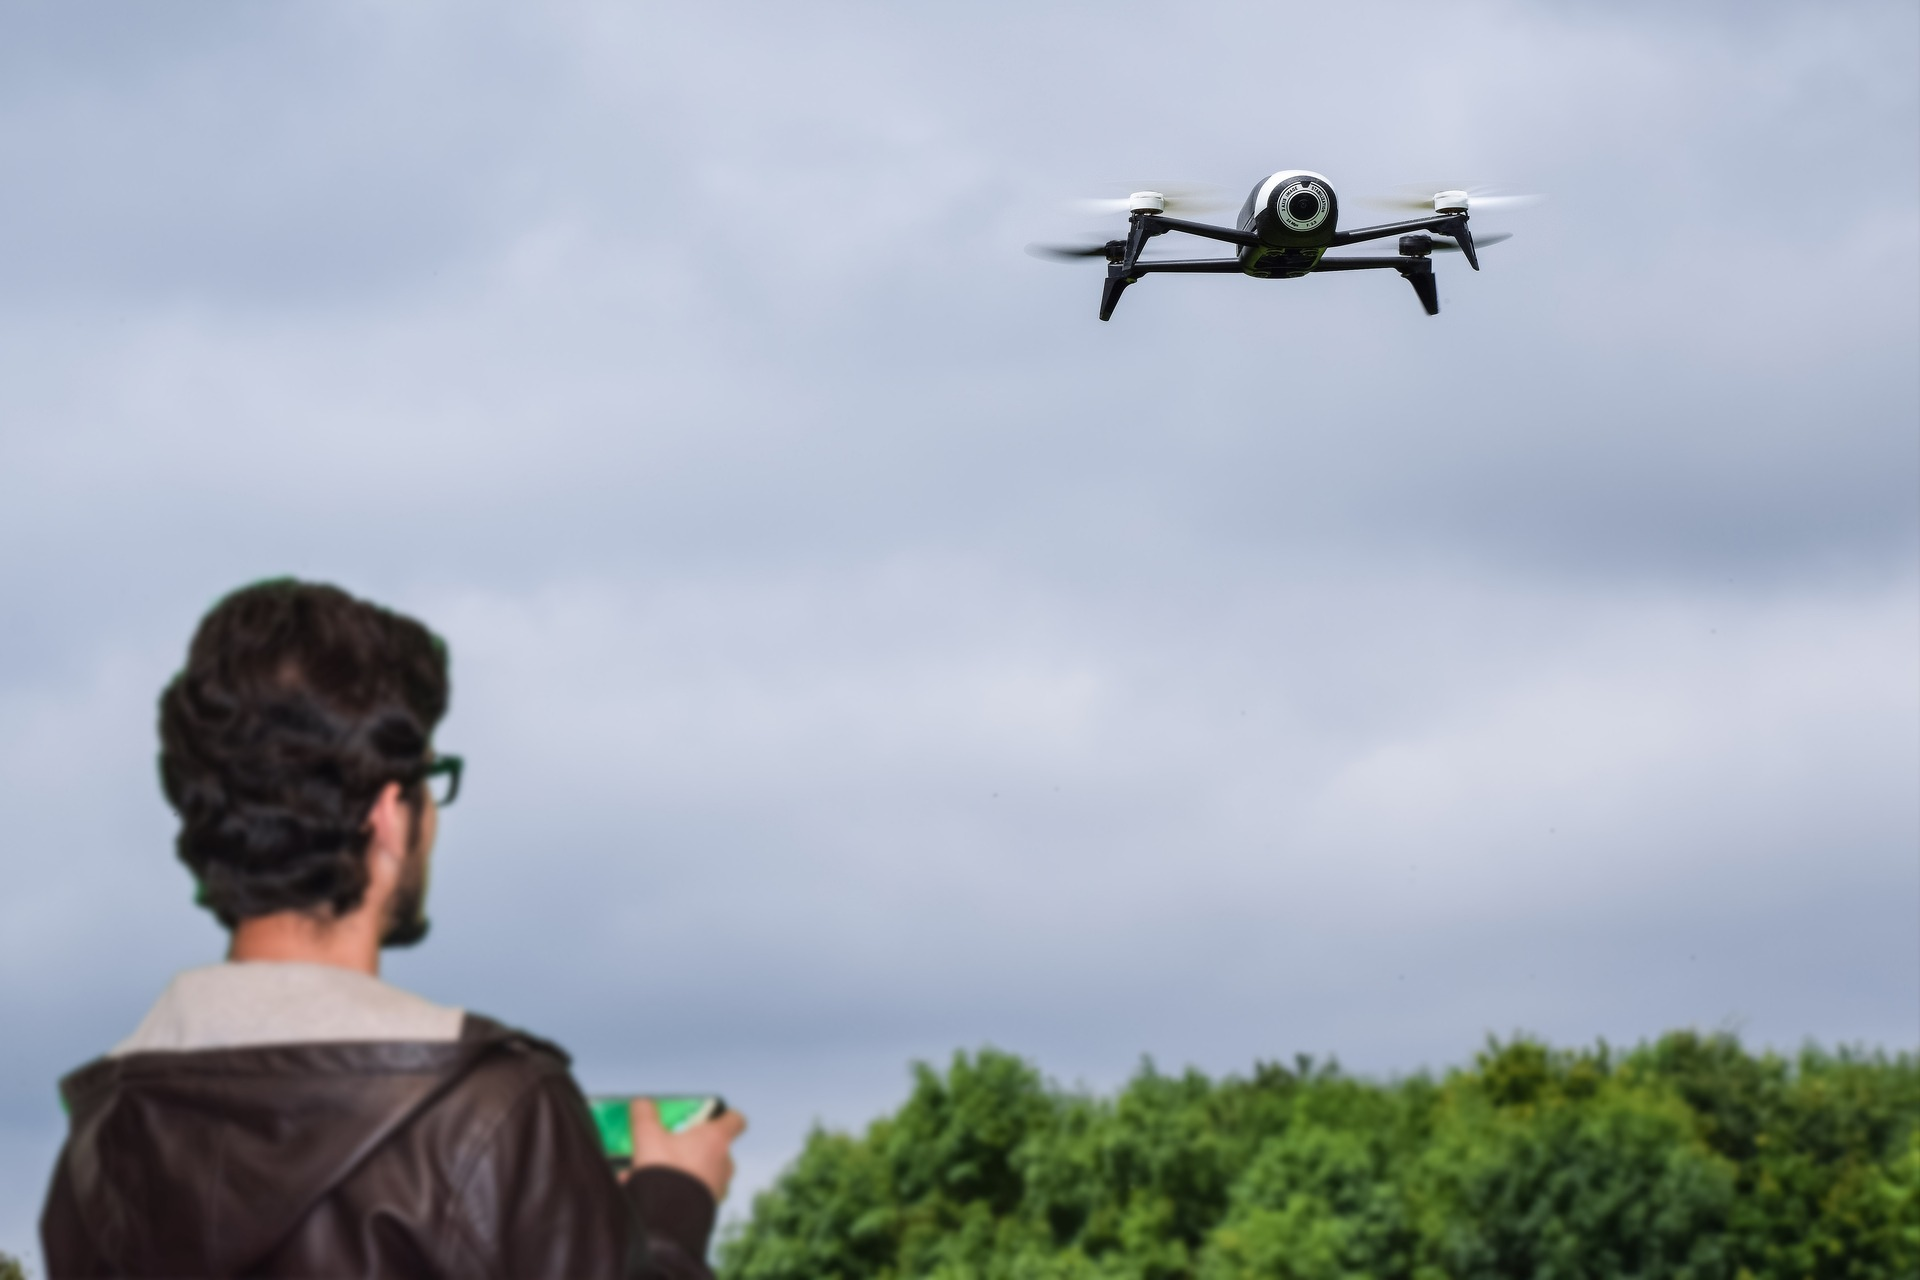 Professional filming drones